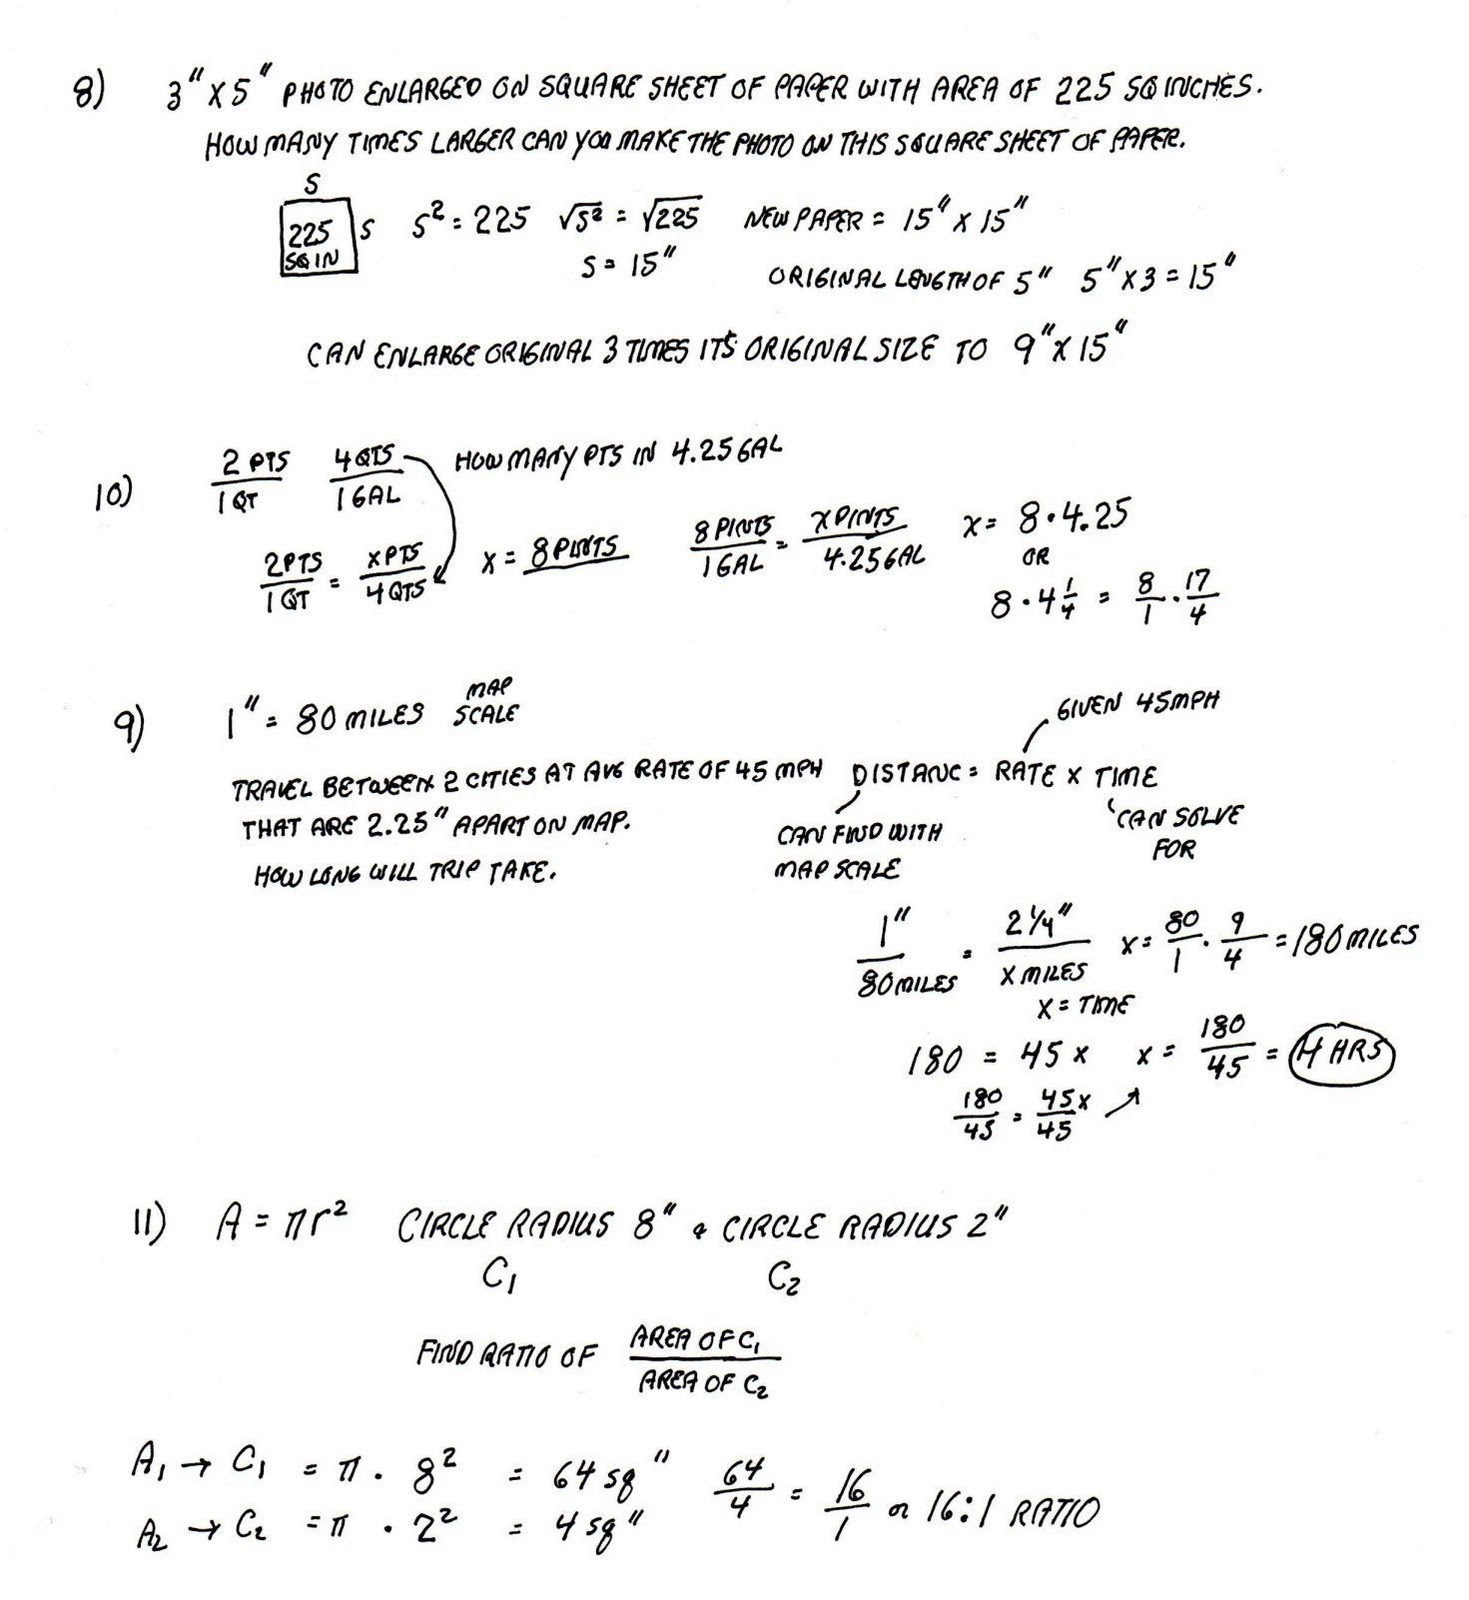 Cobb Adult Ed Math Solutions To May 26 Ratio And